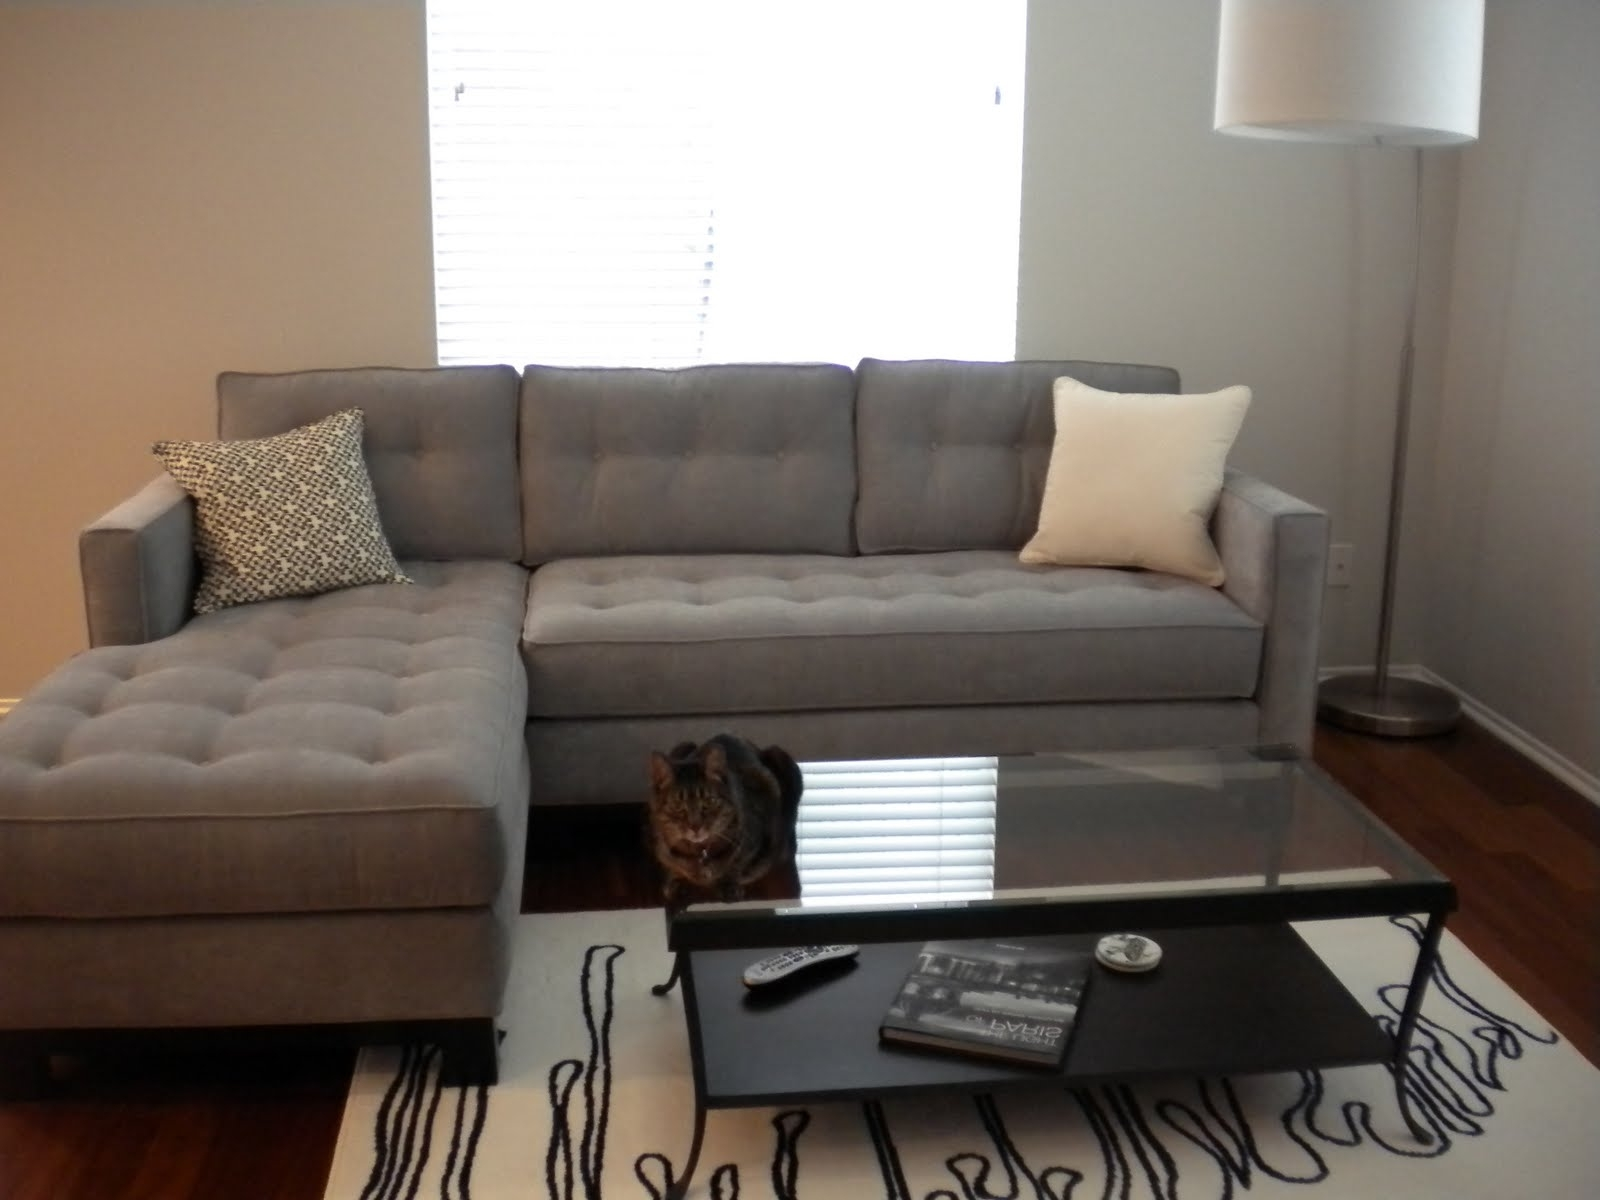 Trendy Greenville Nc Sectional Sofas Within Furniture : Couchtuner X 8 Week Couch To 5k Training Plan Sofa (View 5 of 20)